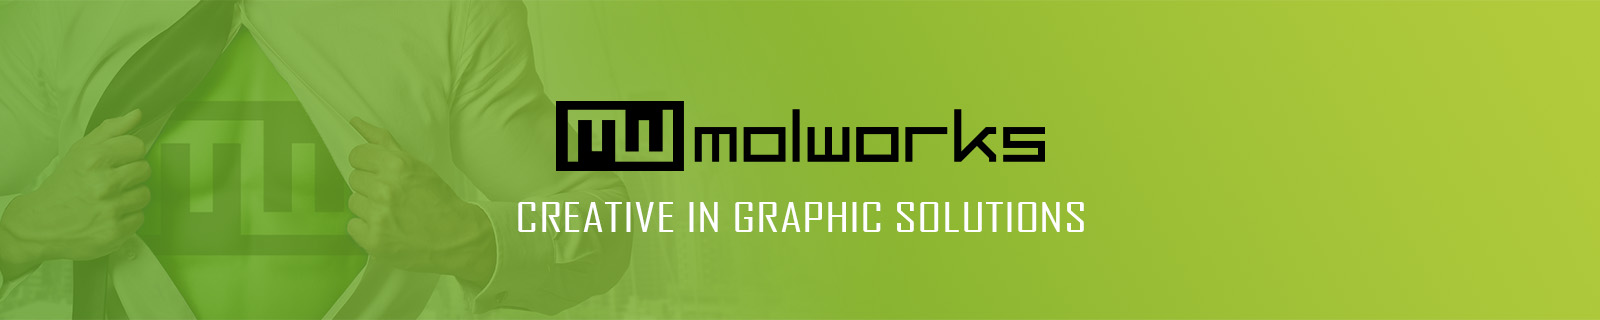 Molworks - creative in graphic solutions